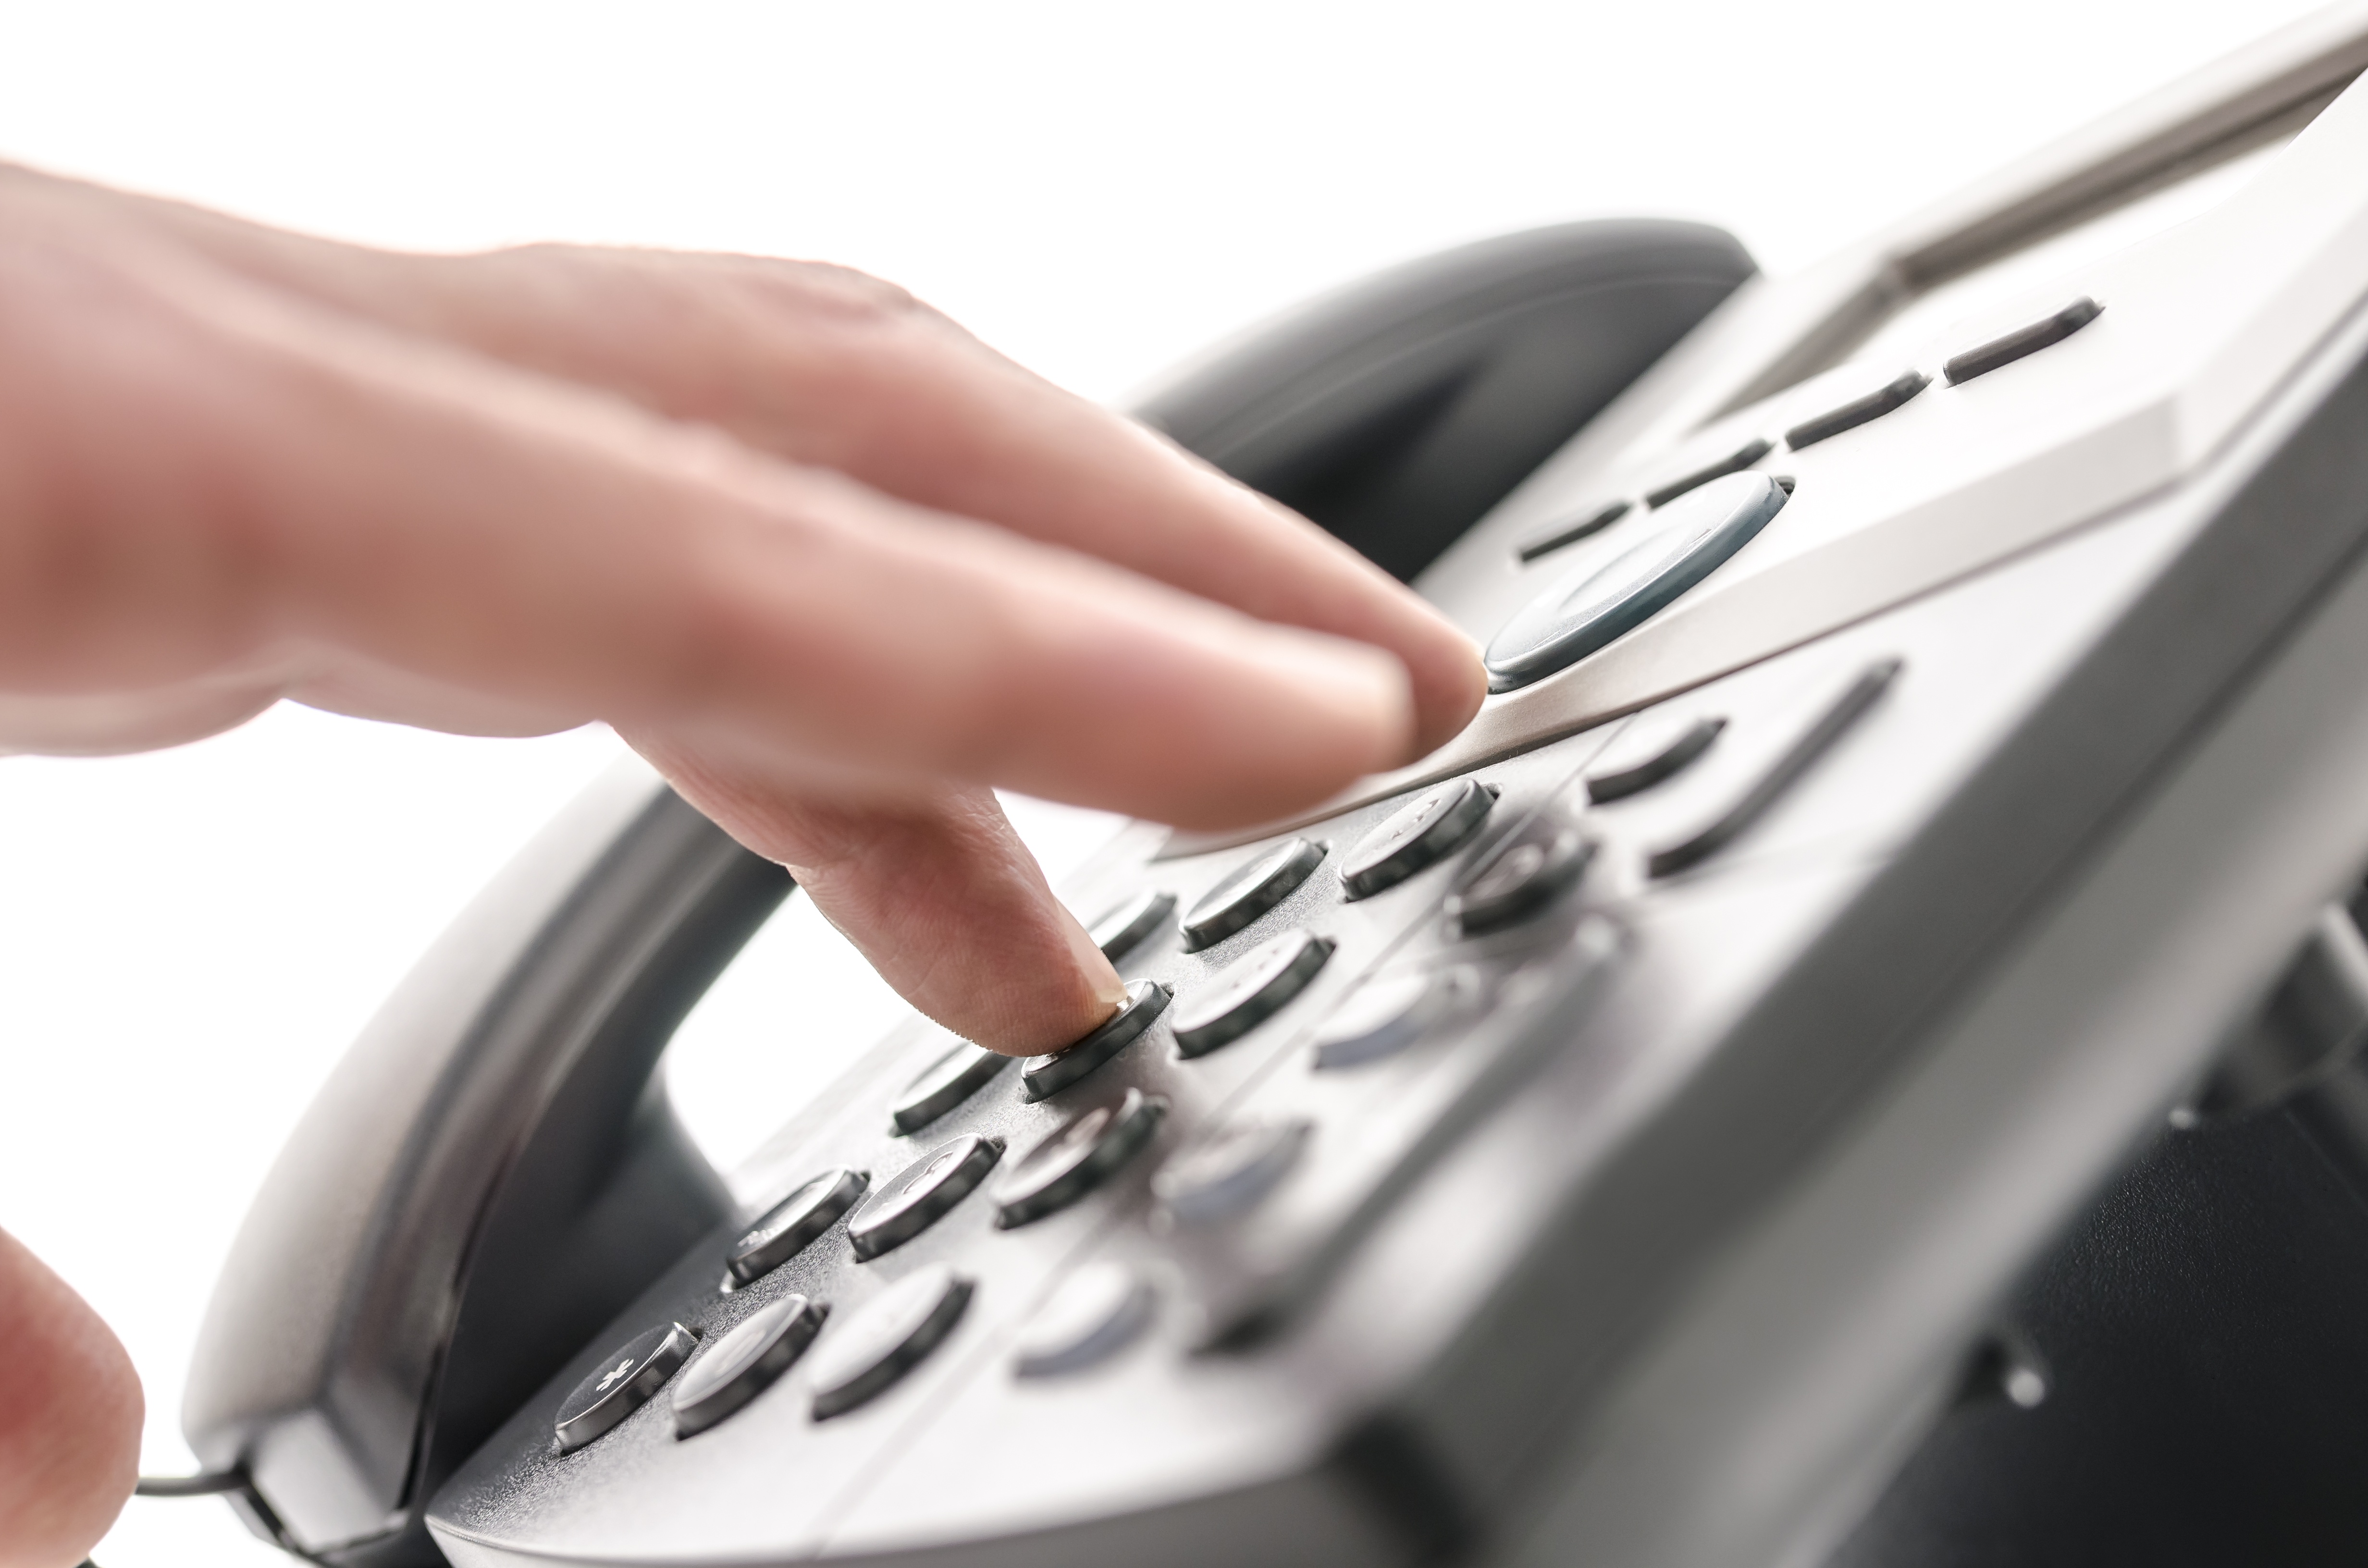 dialing on digital phone, making a phone call